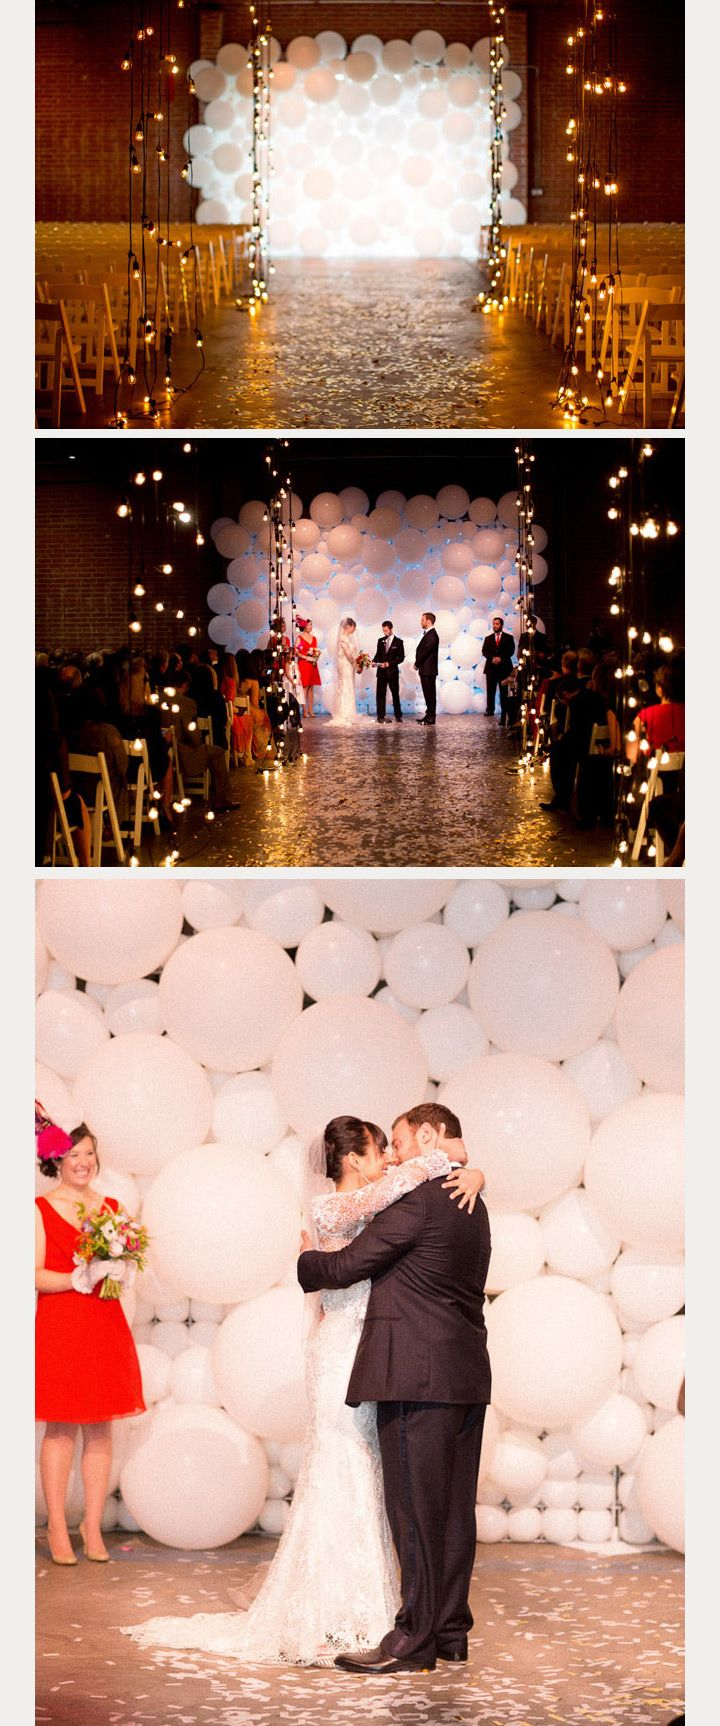 50 Awesome Balloon Wedding Ideas Wedding Balloon Decorations